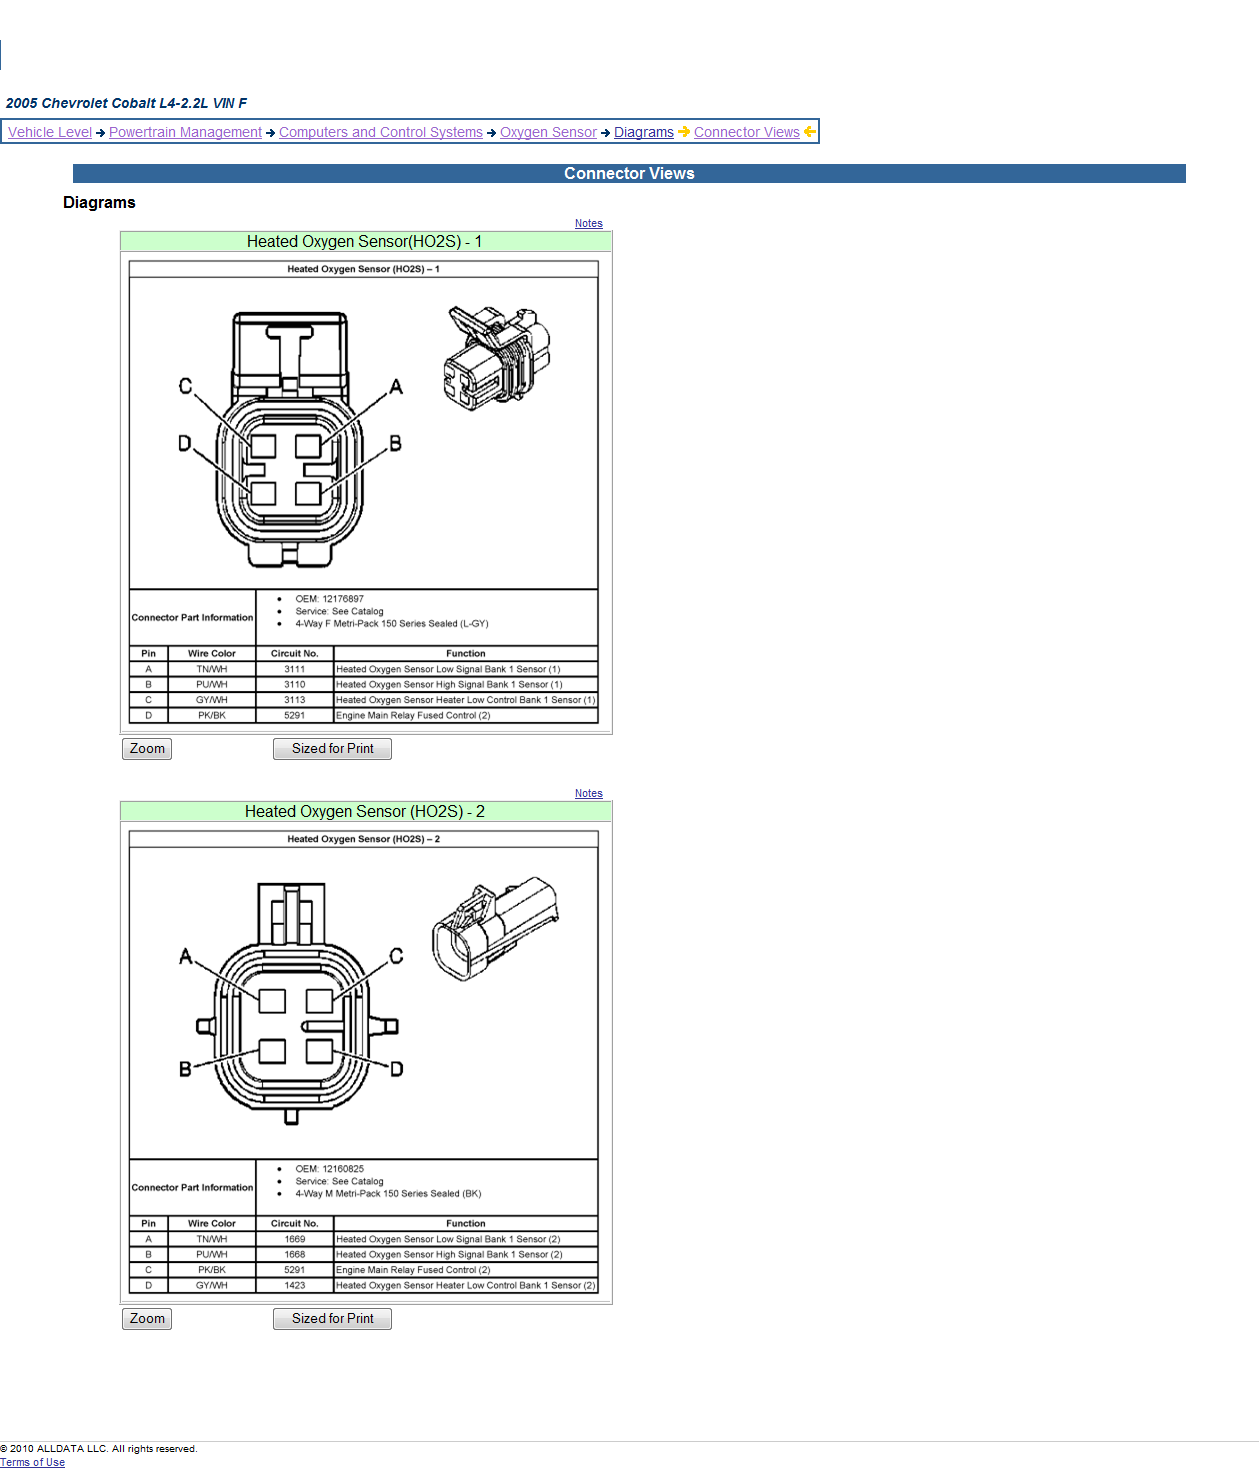 a4deda12a4f6d49137b2c3198e0ce0ff gm o2 sensor wiring diagram rough schematic engine wiring  at bayanpartner.co